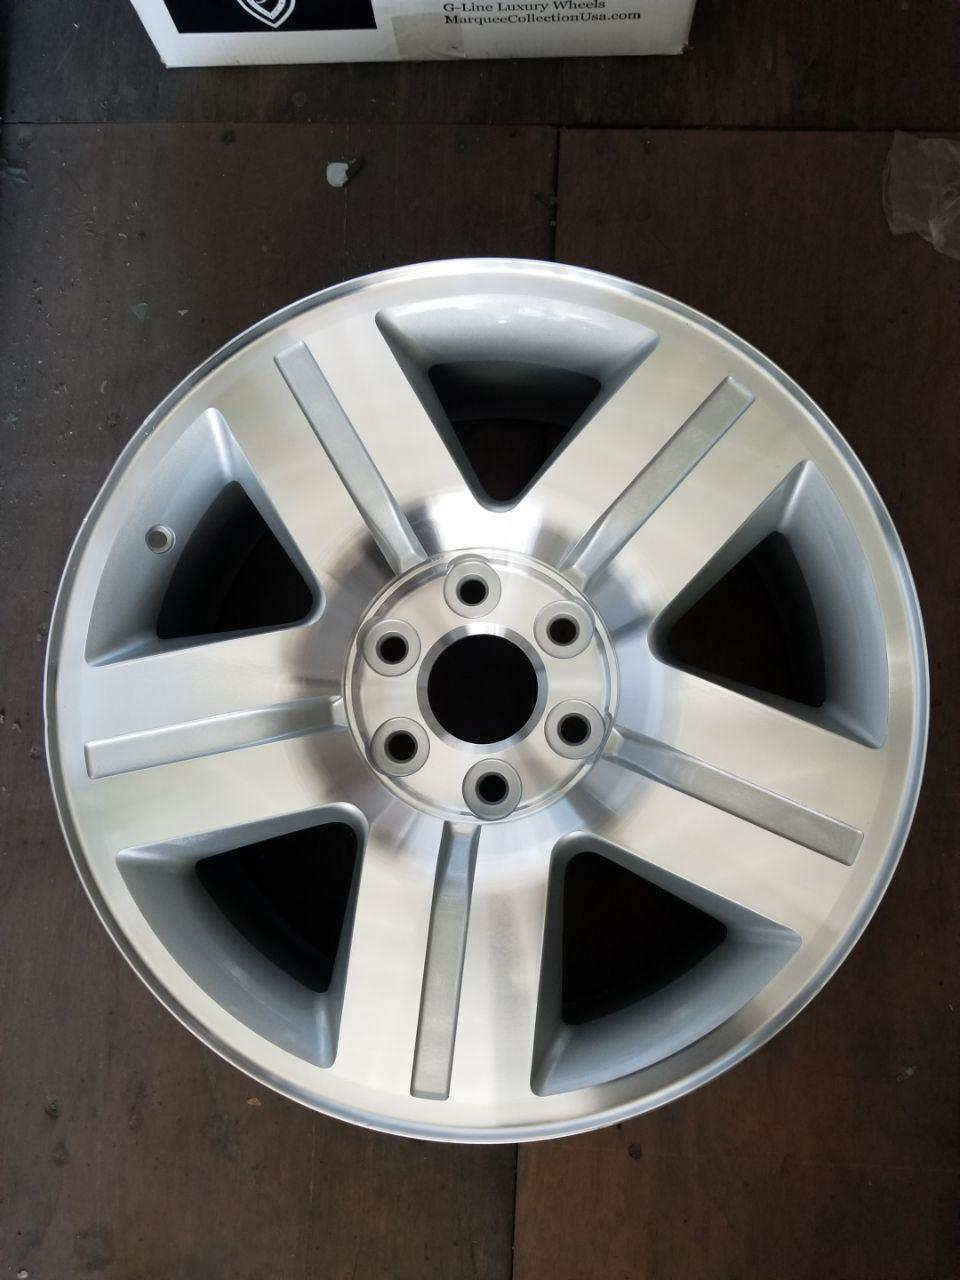 - OEM WHEELS - 2007-2011 GM 1500 20x8.5 5 SPOKE Hollander #5291 /  USED